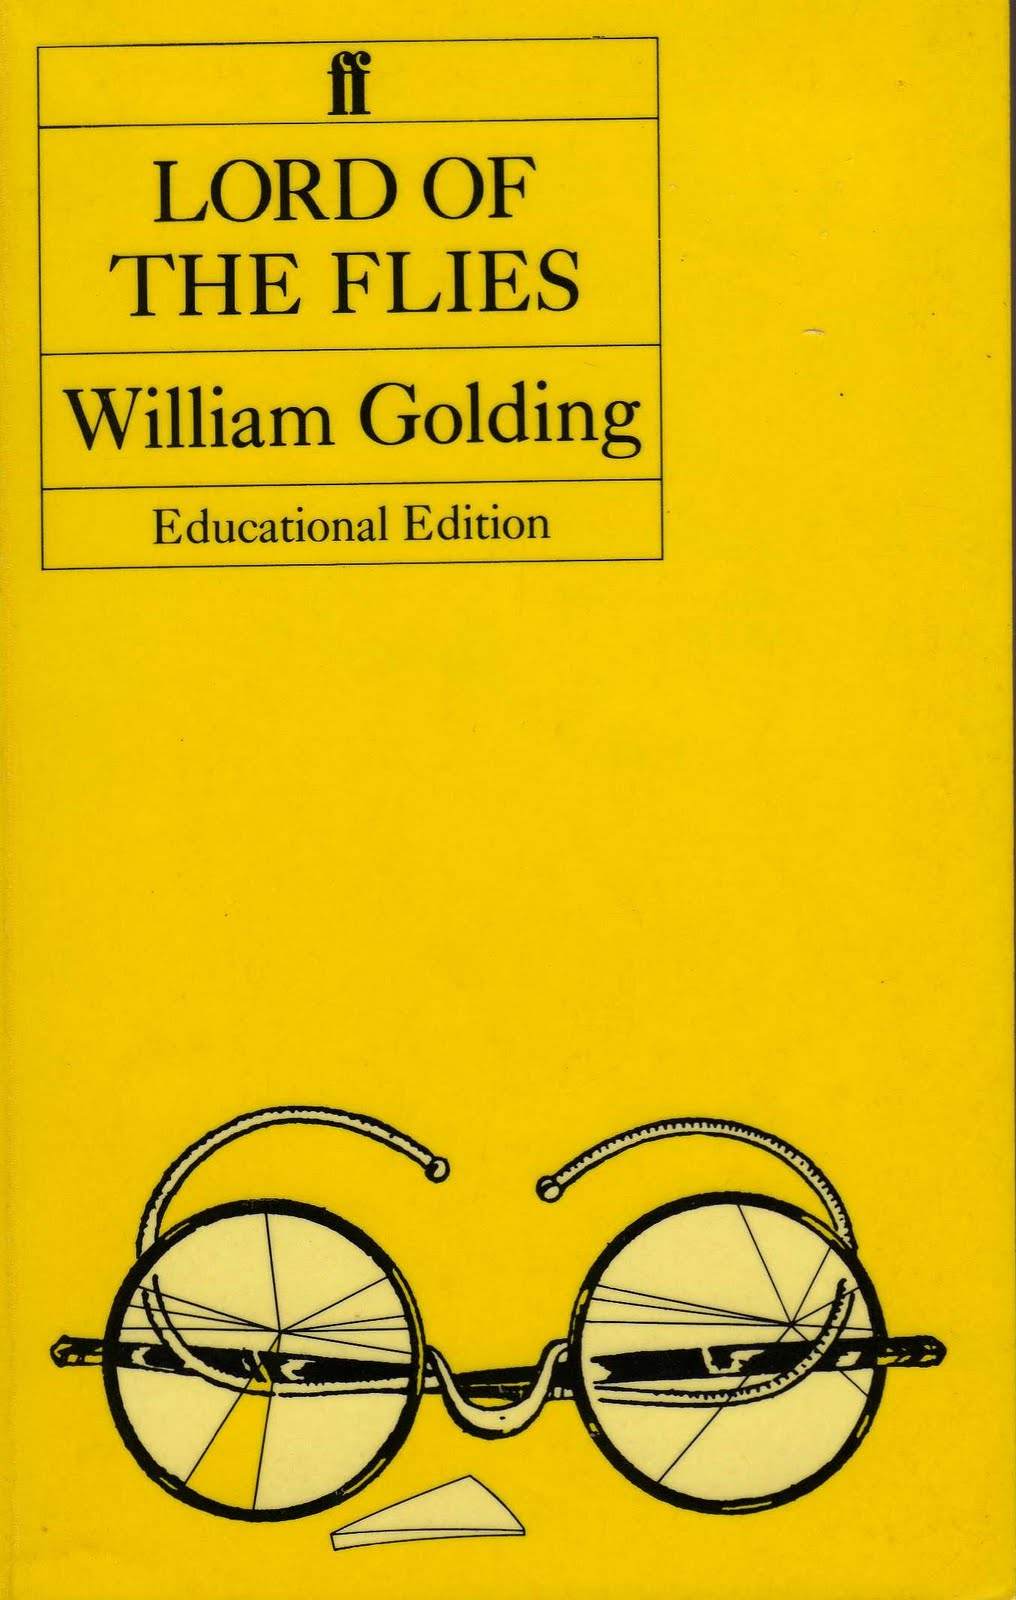 the importance of authoritative figure in society in the novel lord of the flies by william golding